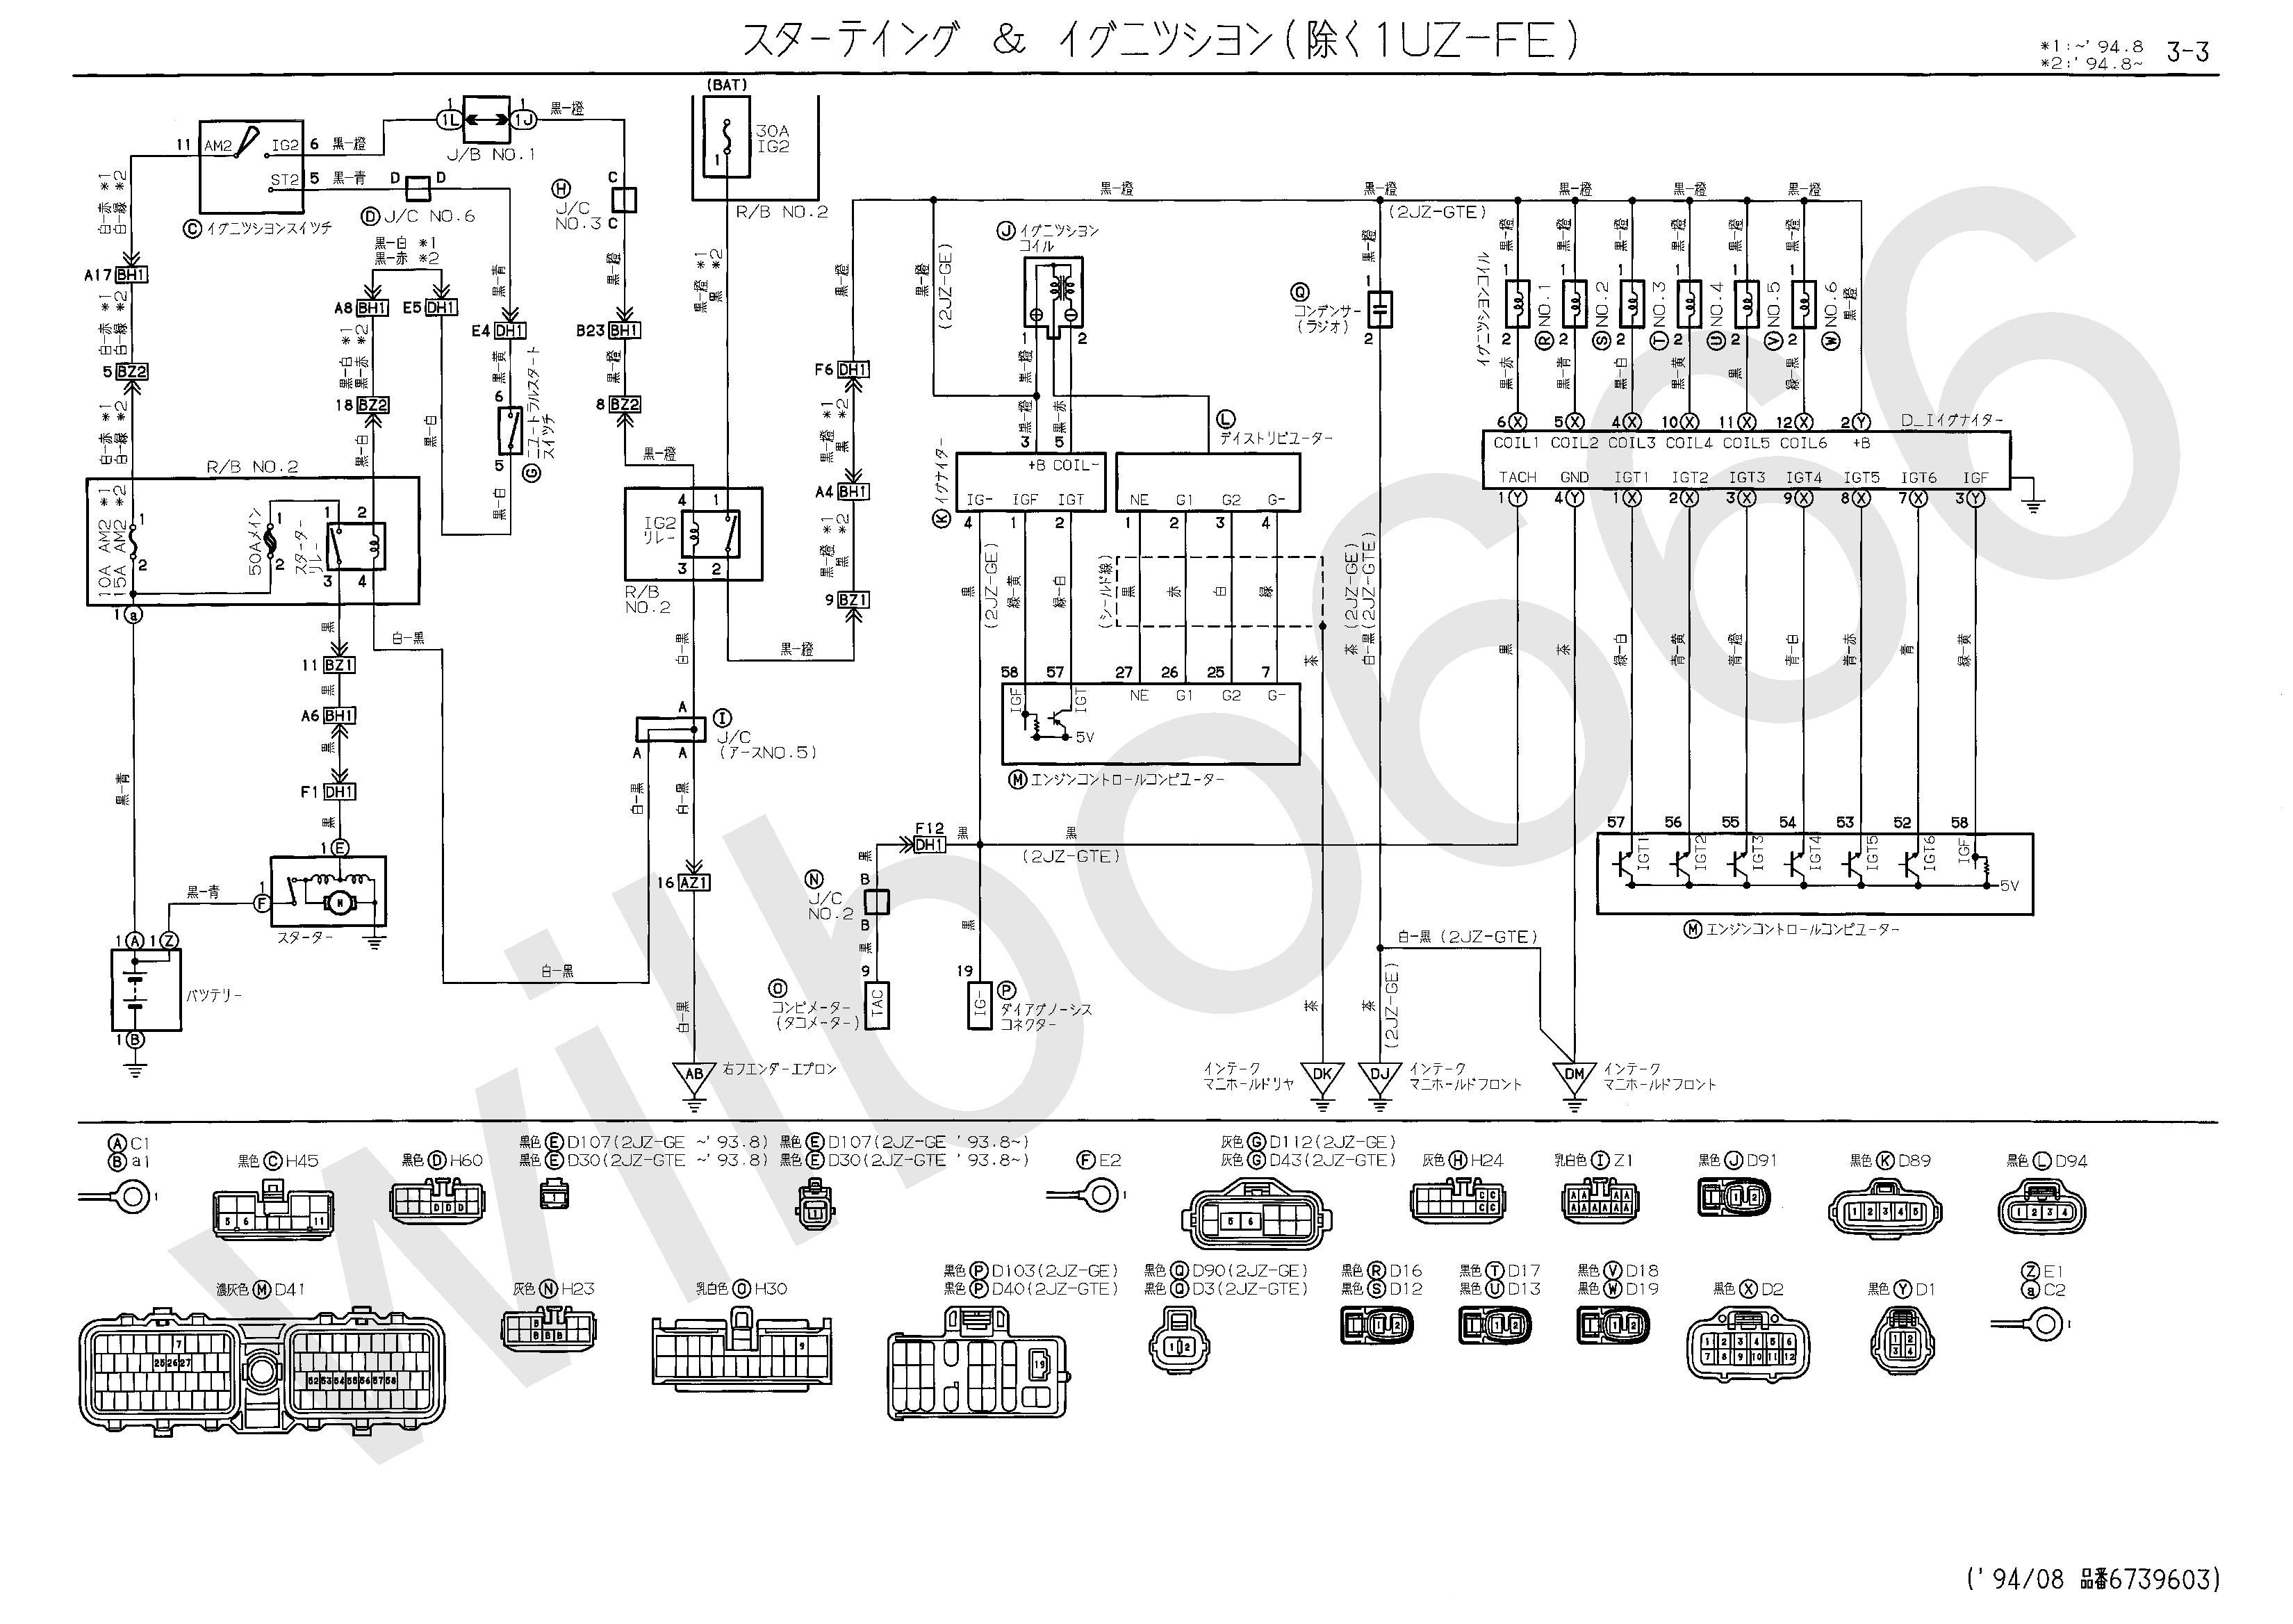 JZS14%23%2C UZS14%23 Electrical Wiring Diagram 6739604 3 3 2jz wiring diagram basic home electrical wiring diagrams \u2022 wiring 2jzgte wiring harness made easy at eliteediting.co